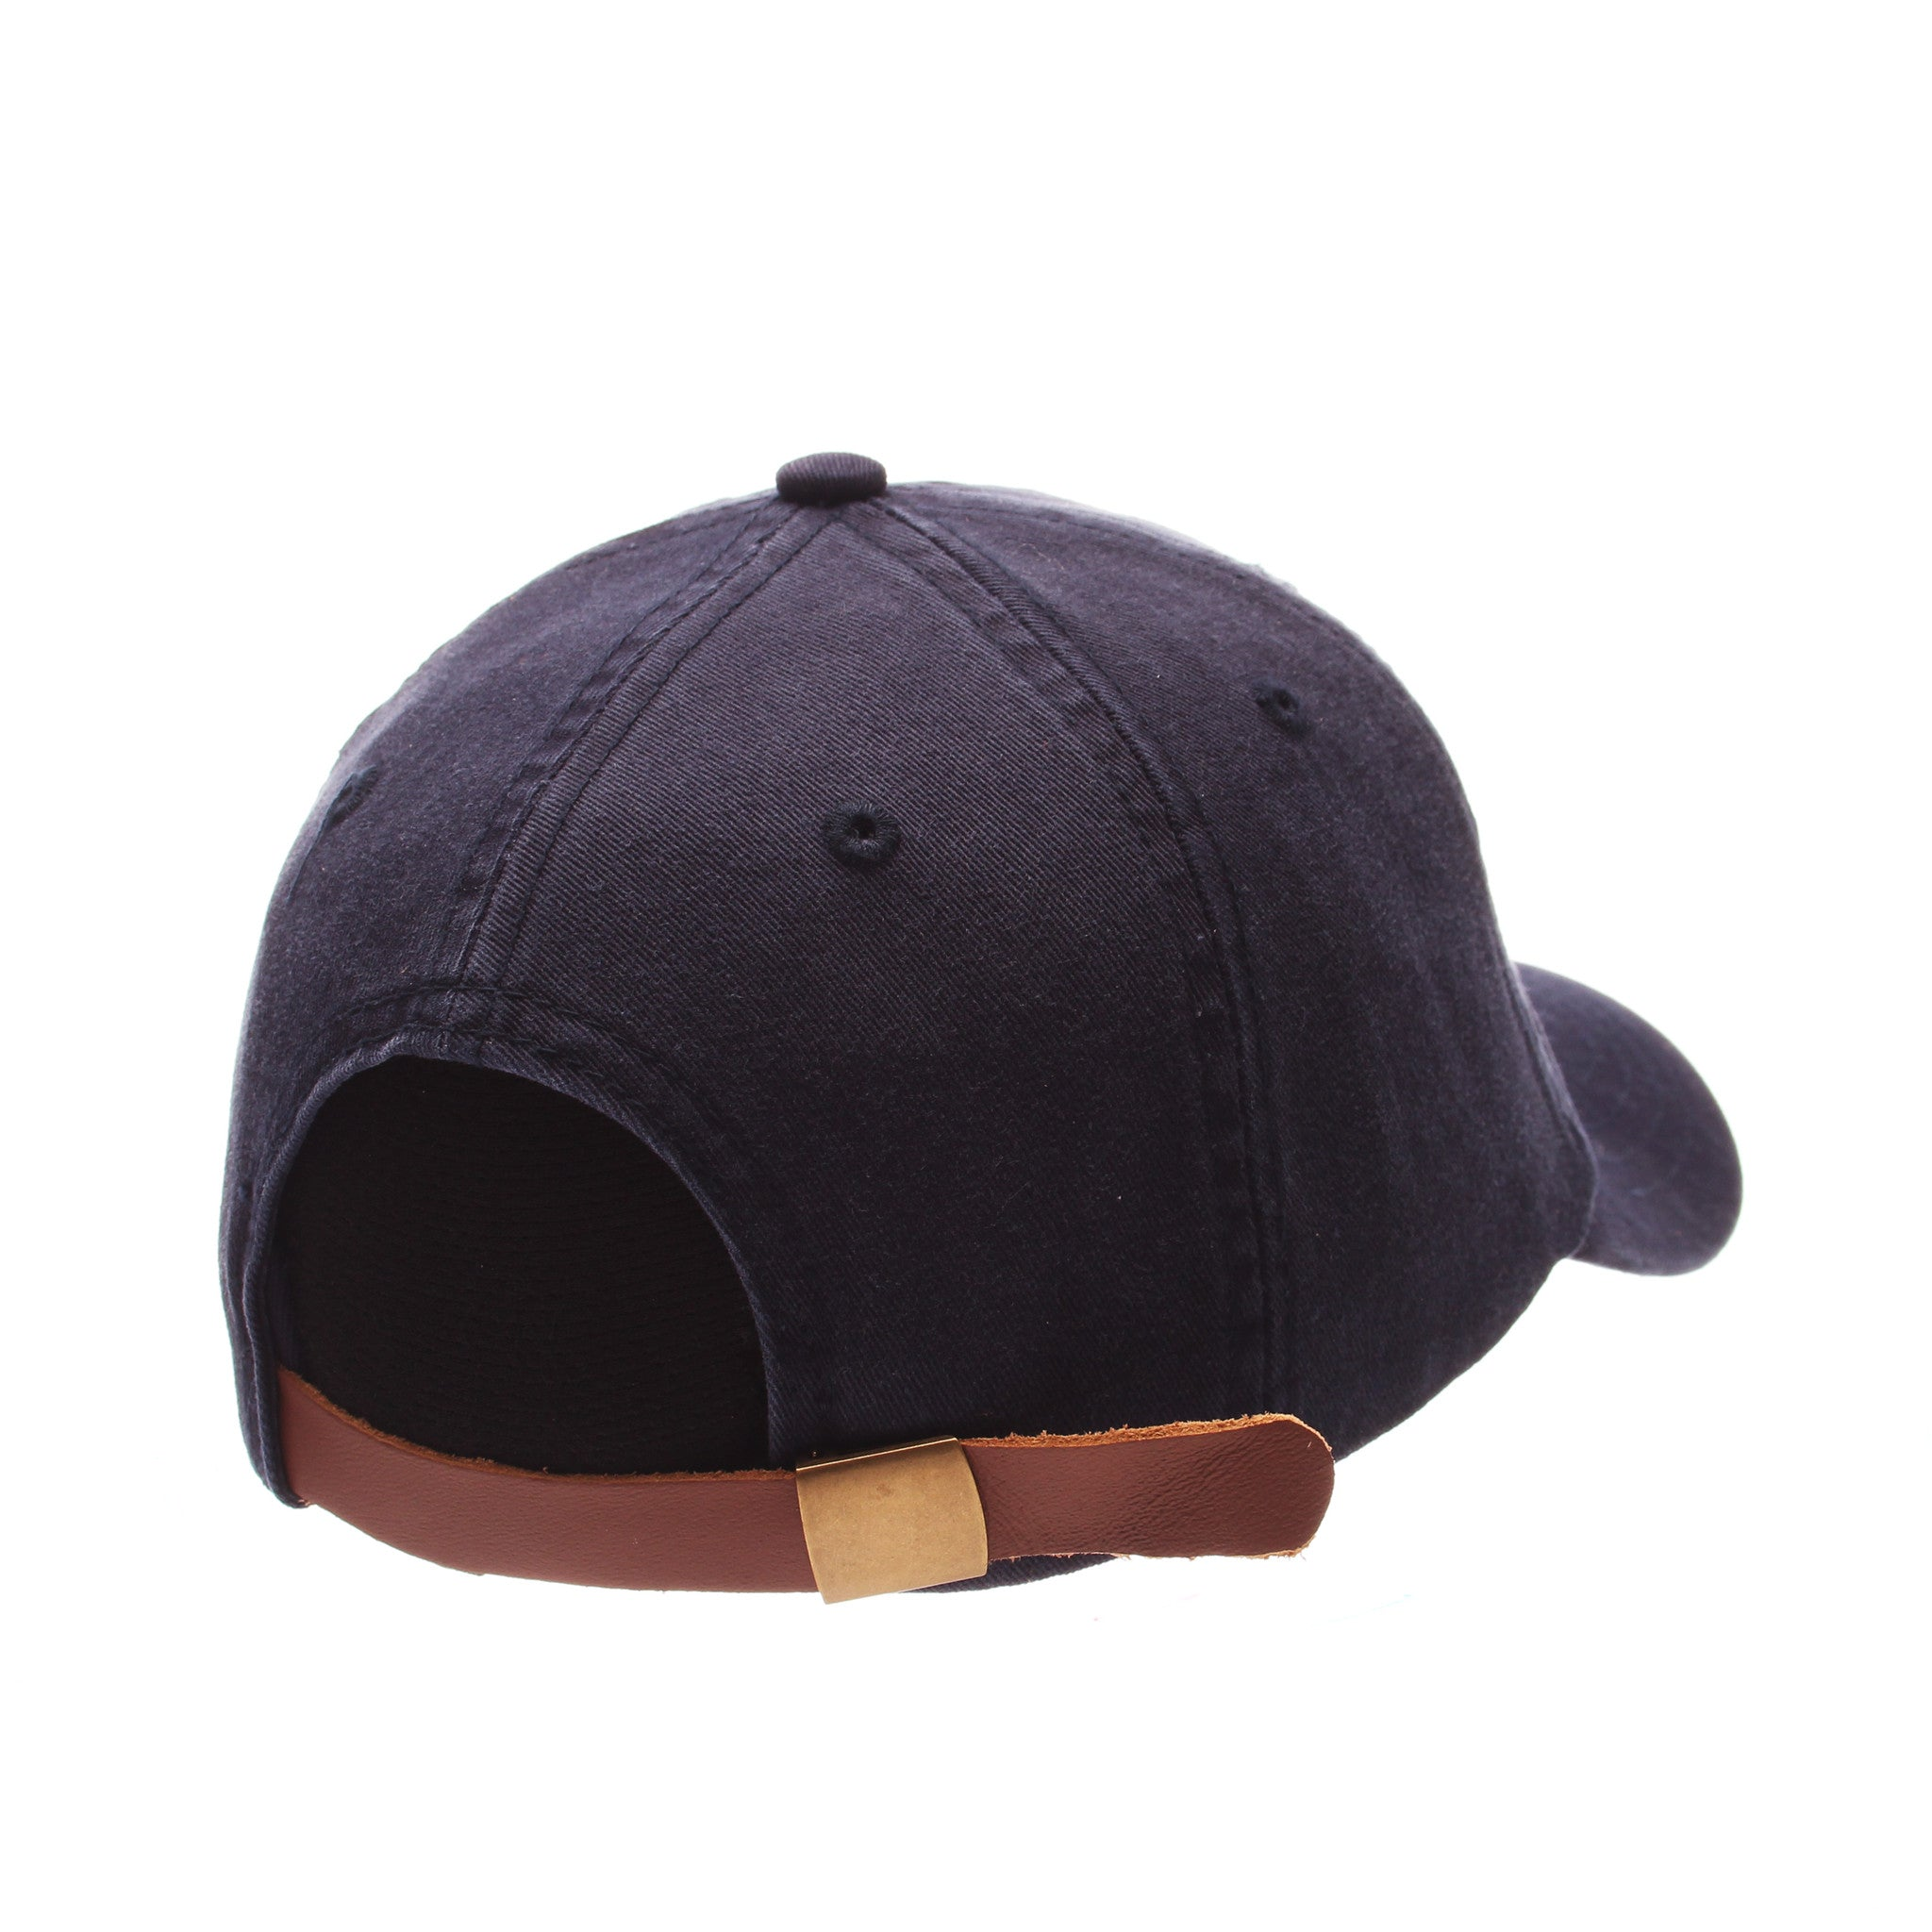 No Royalties Dad Hat (CHOCOLATE DONUT) Navy Dark Washed Adjustable hats by Zephyr